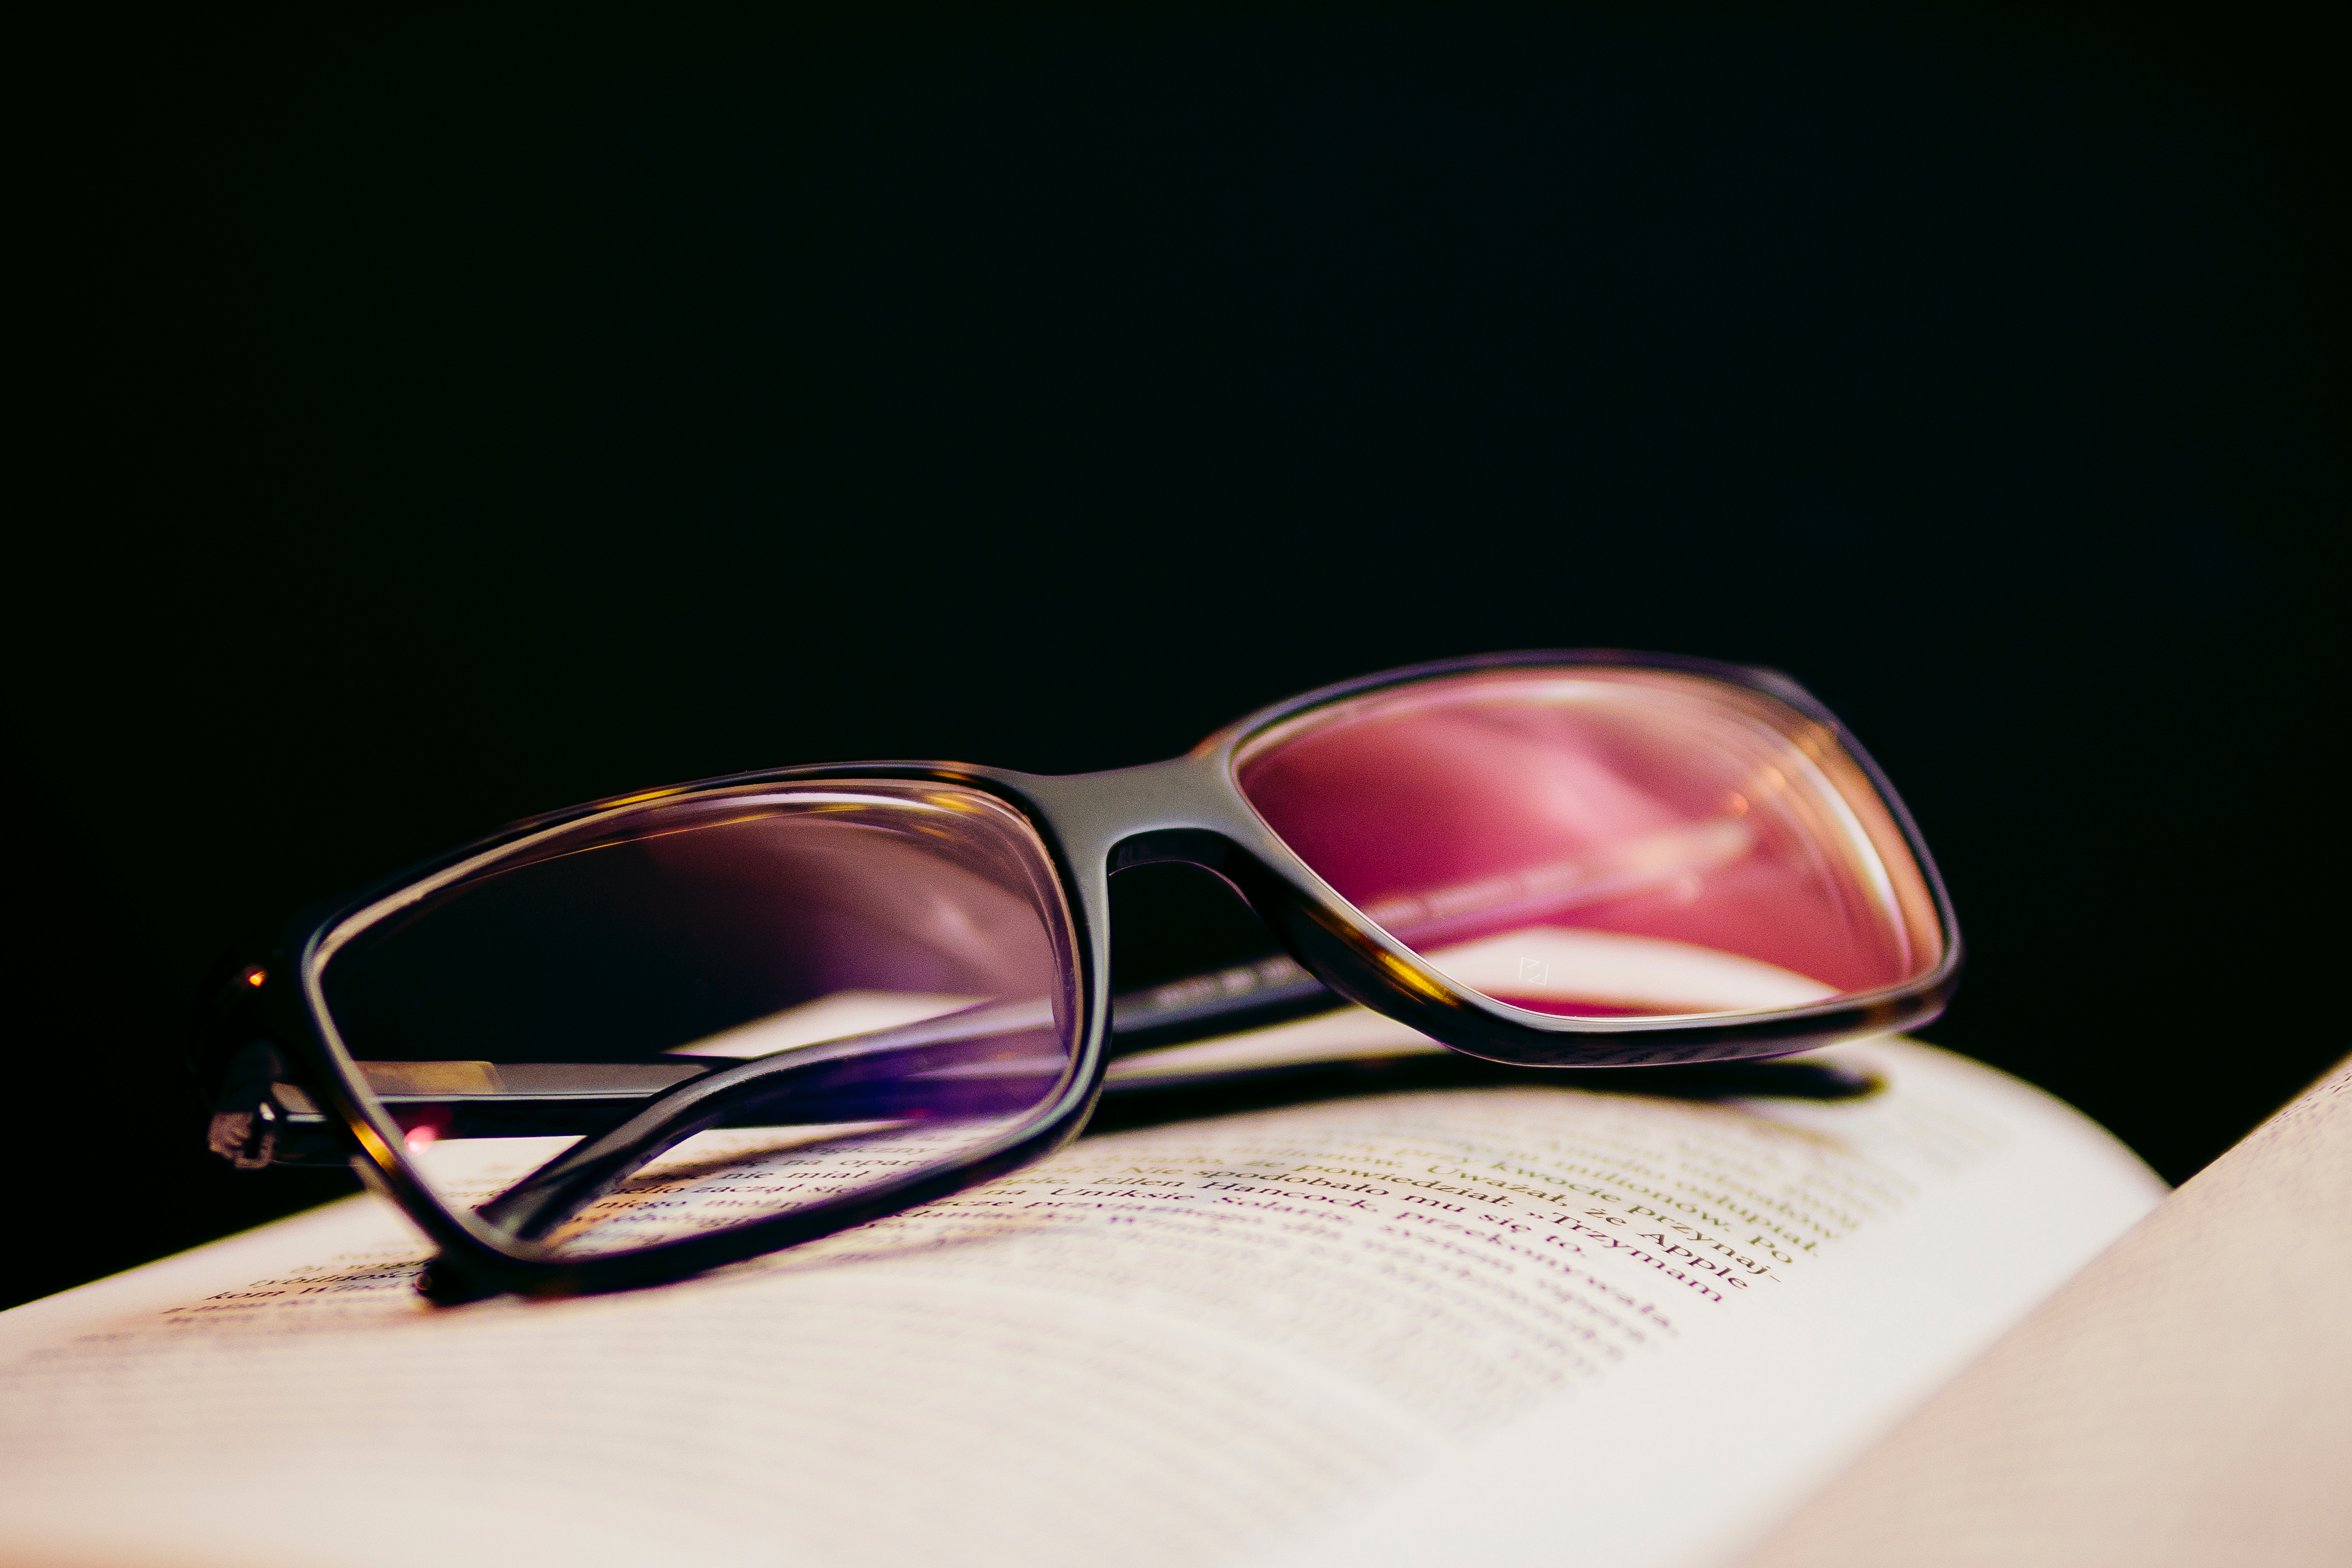 74219 download wallpaper Miscellanea, Miscellaneous, Book, Lenses, Glasses, Spectacles, Diopter screensavers and pictures for free